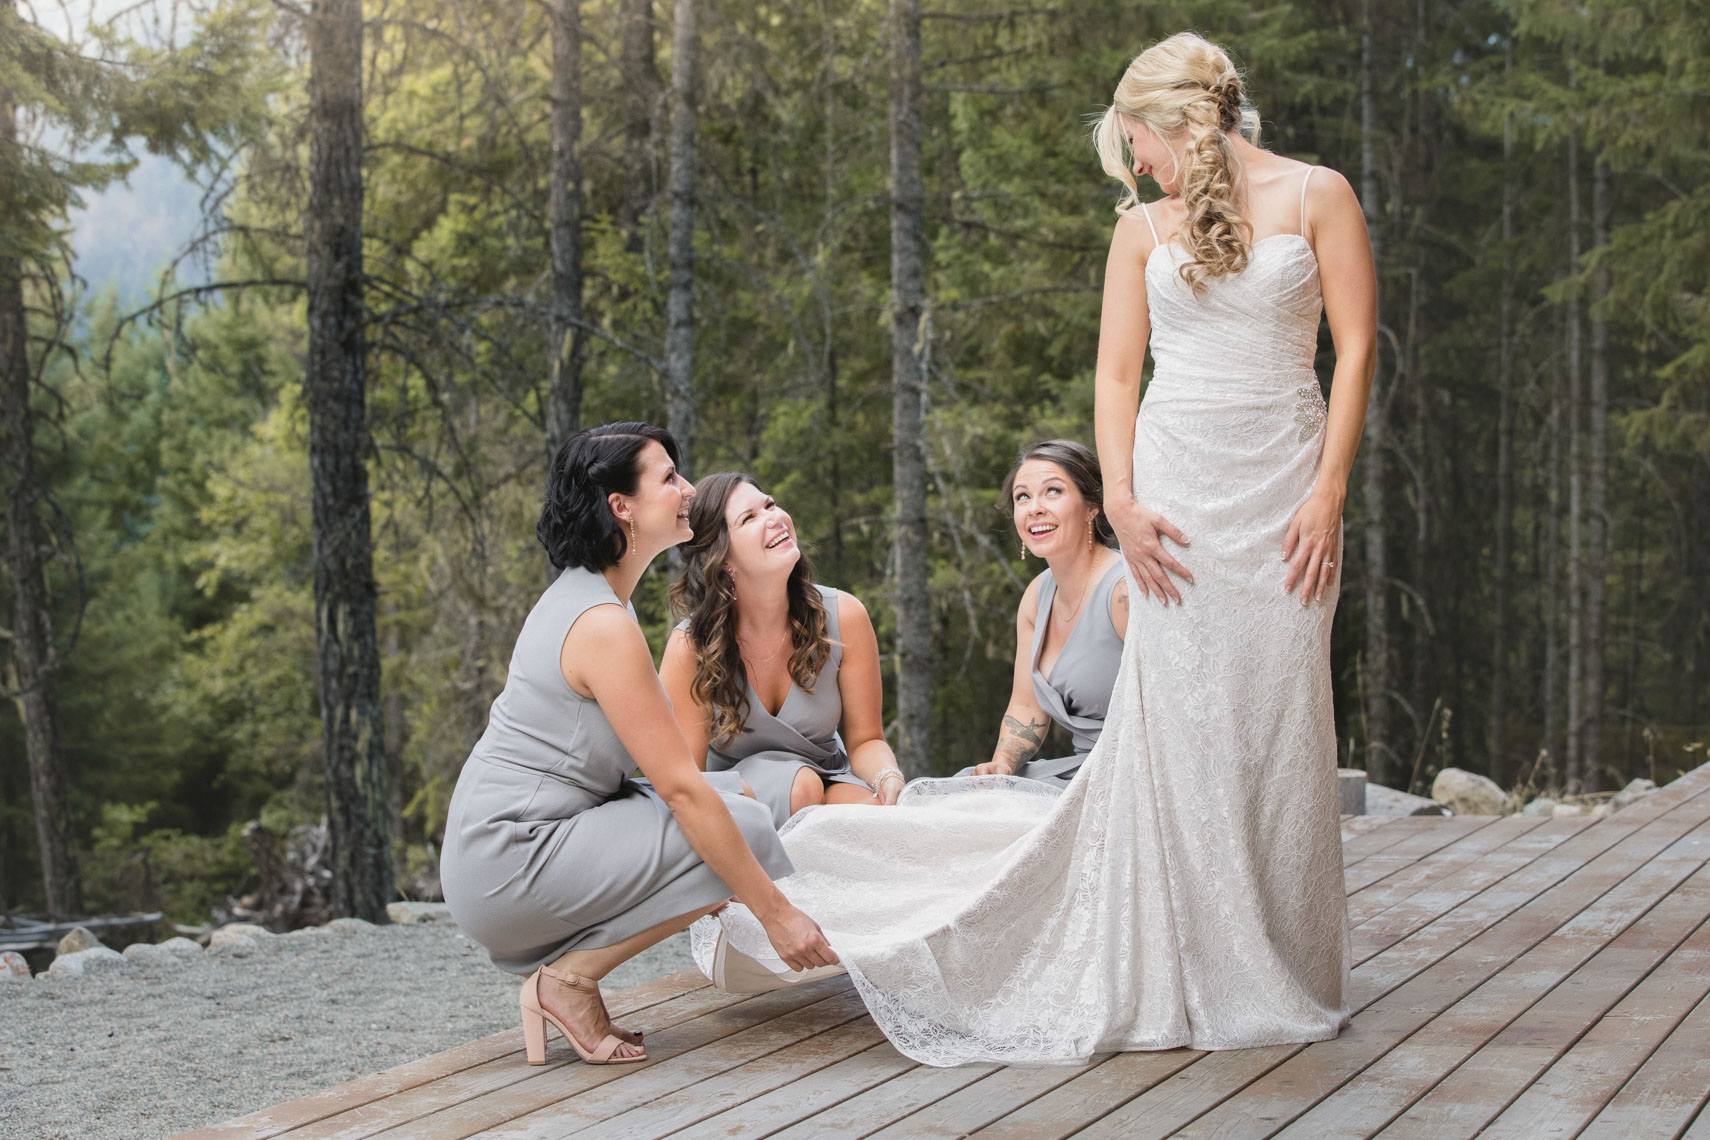 Whistler wedding photographer shows bridesmaids helping bride into wedding dress